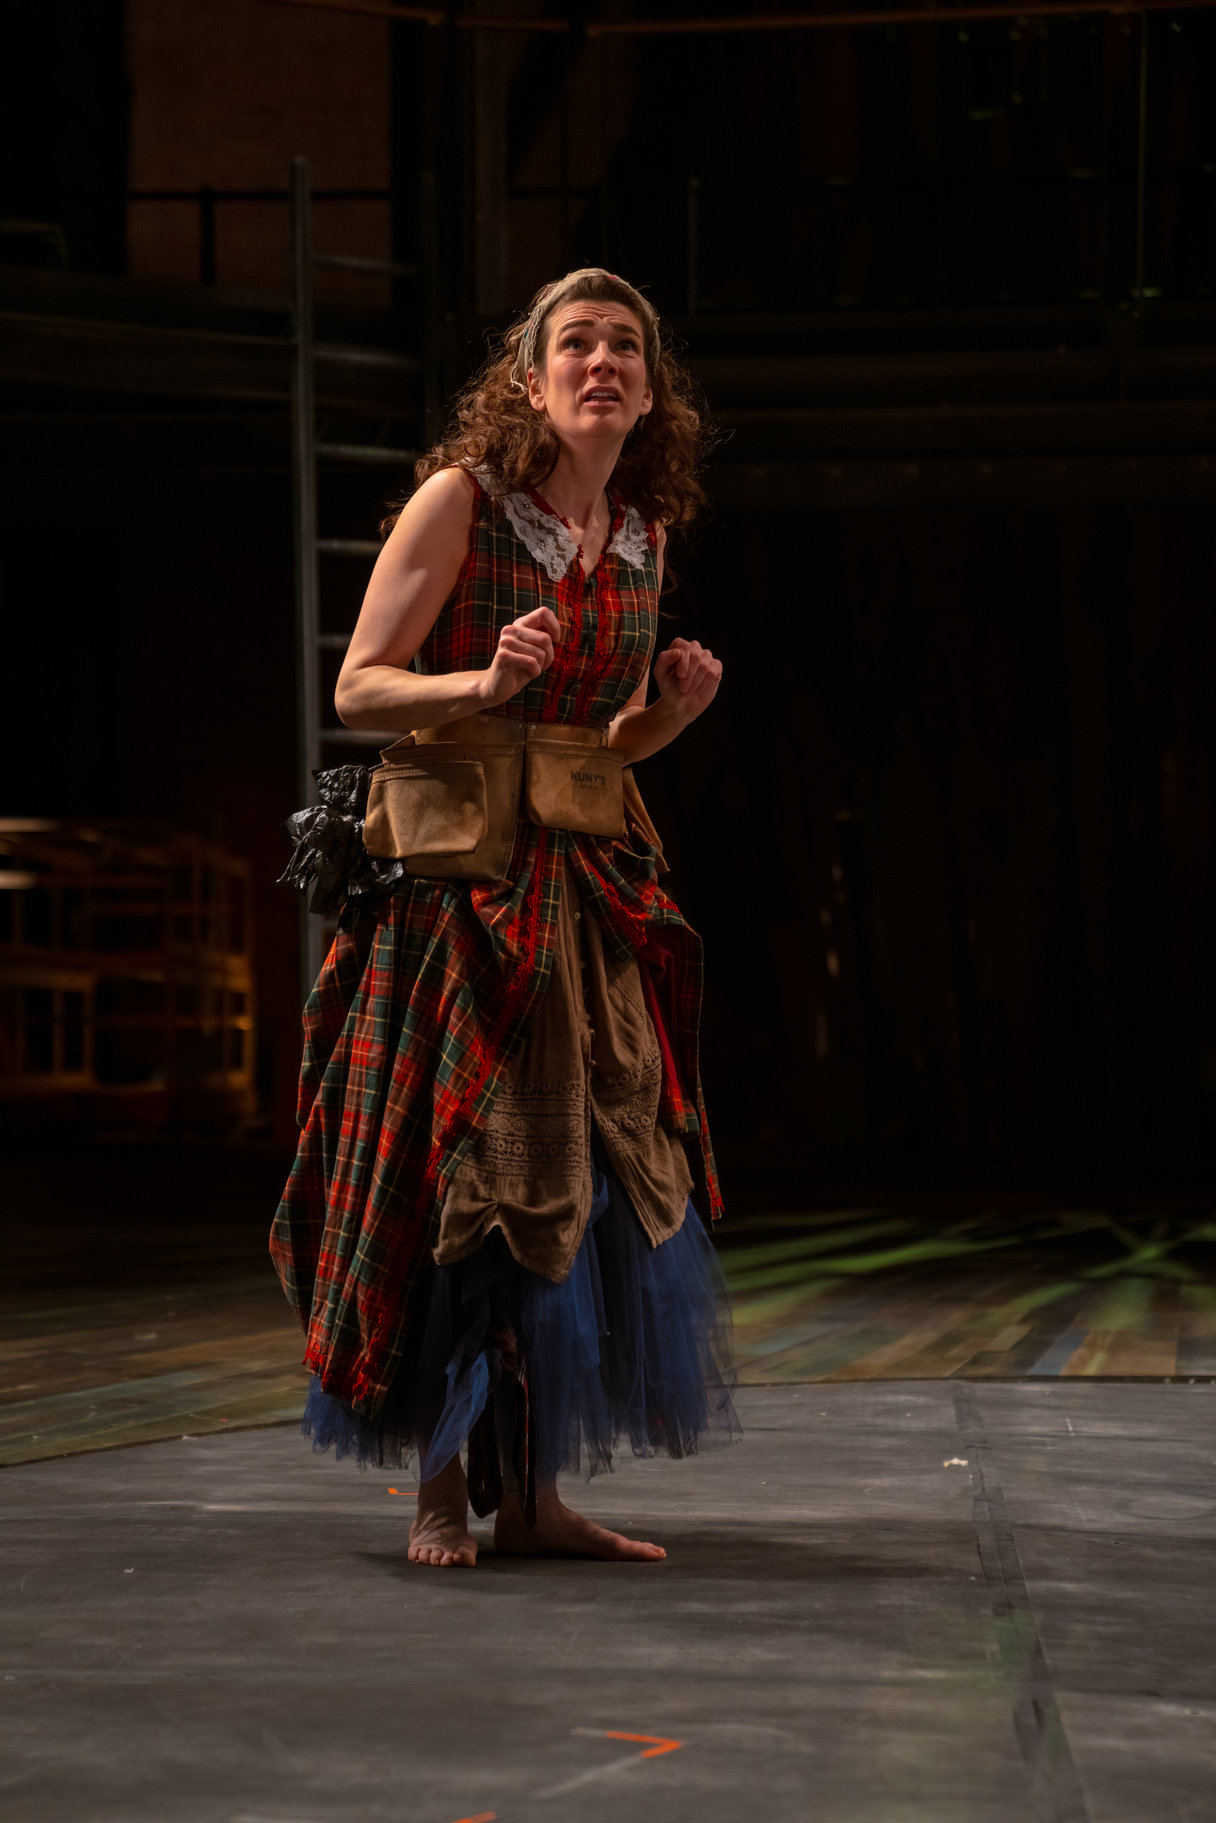 A barefoot woman in a dress made of layers of different fabrics.